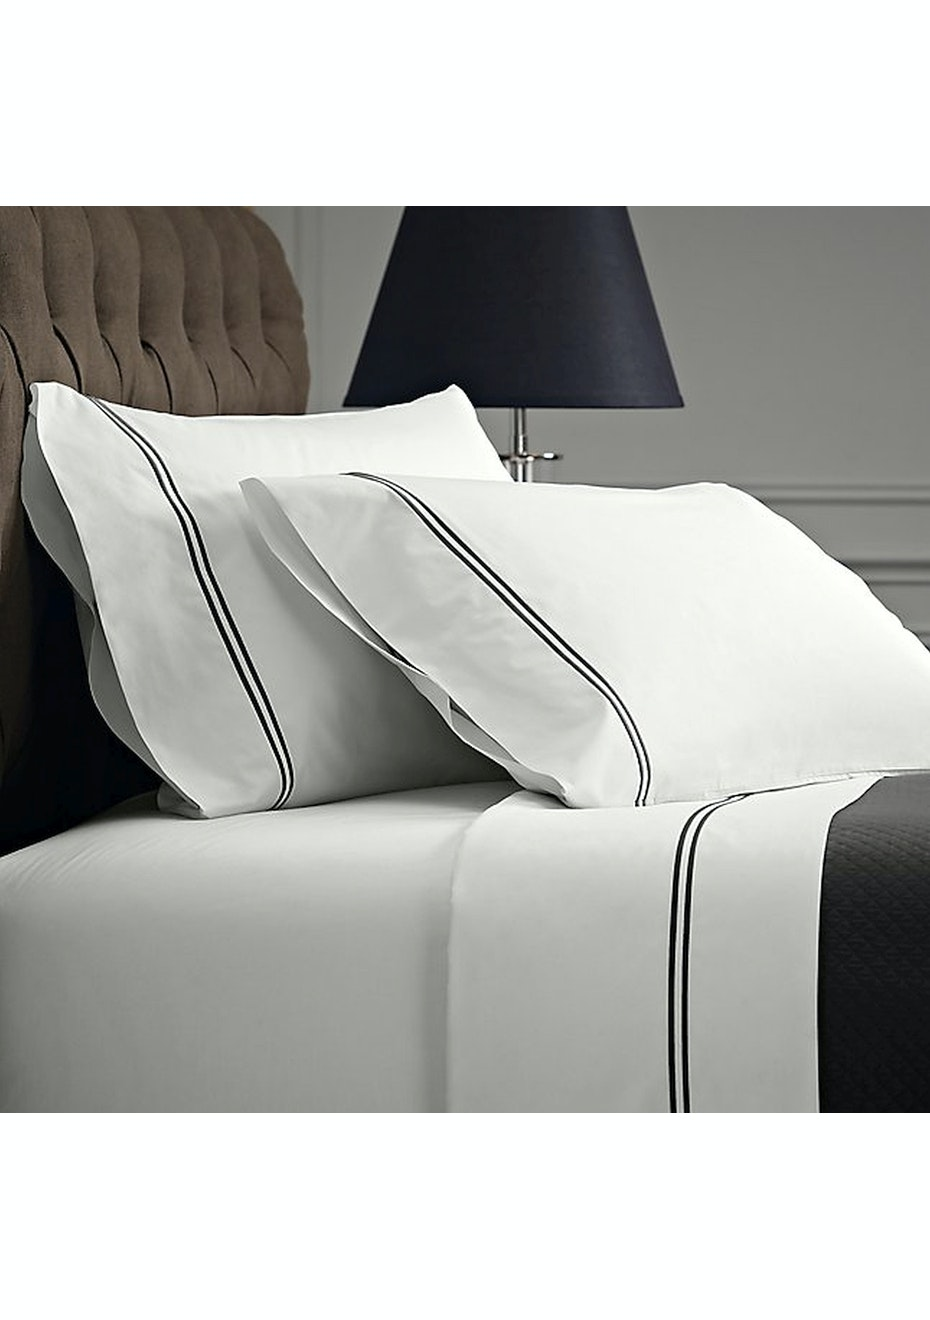 Style & Co 1000 Thread count Egyptian Cotton Hotel Collection Sorrento Sheet sets King White